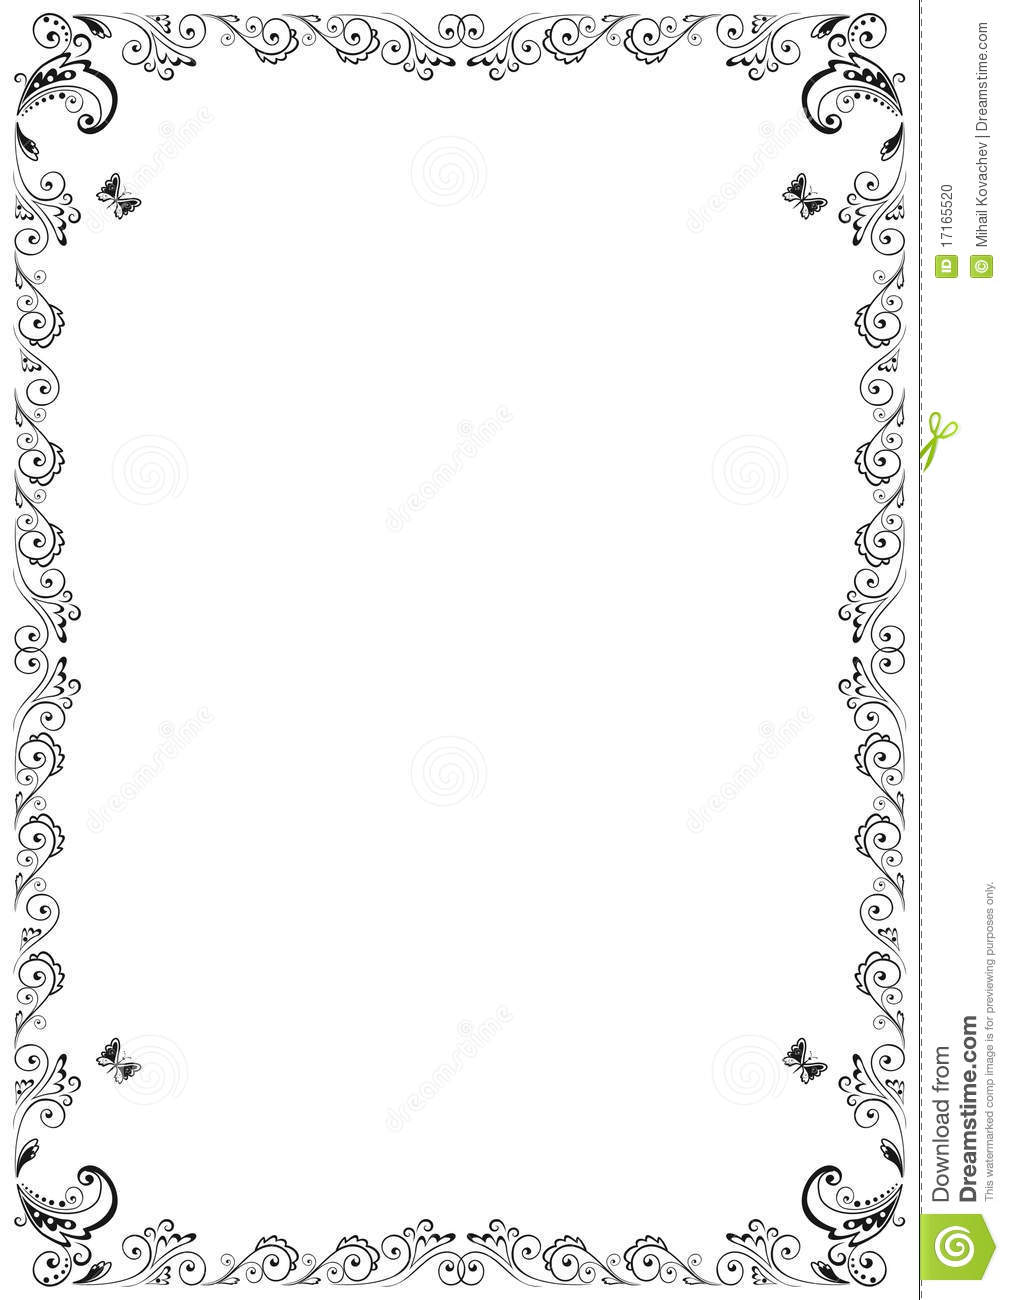 Floral Frame Stock Photo - Image: 17165520